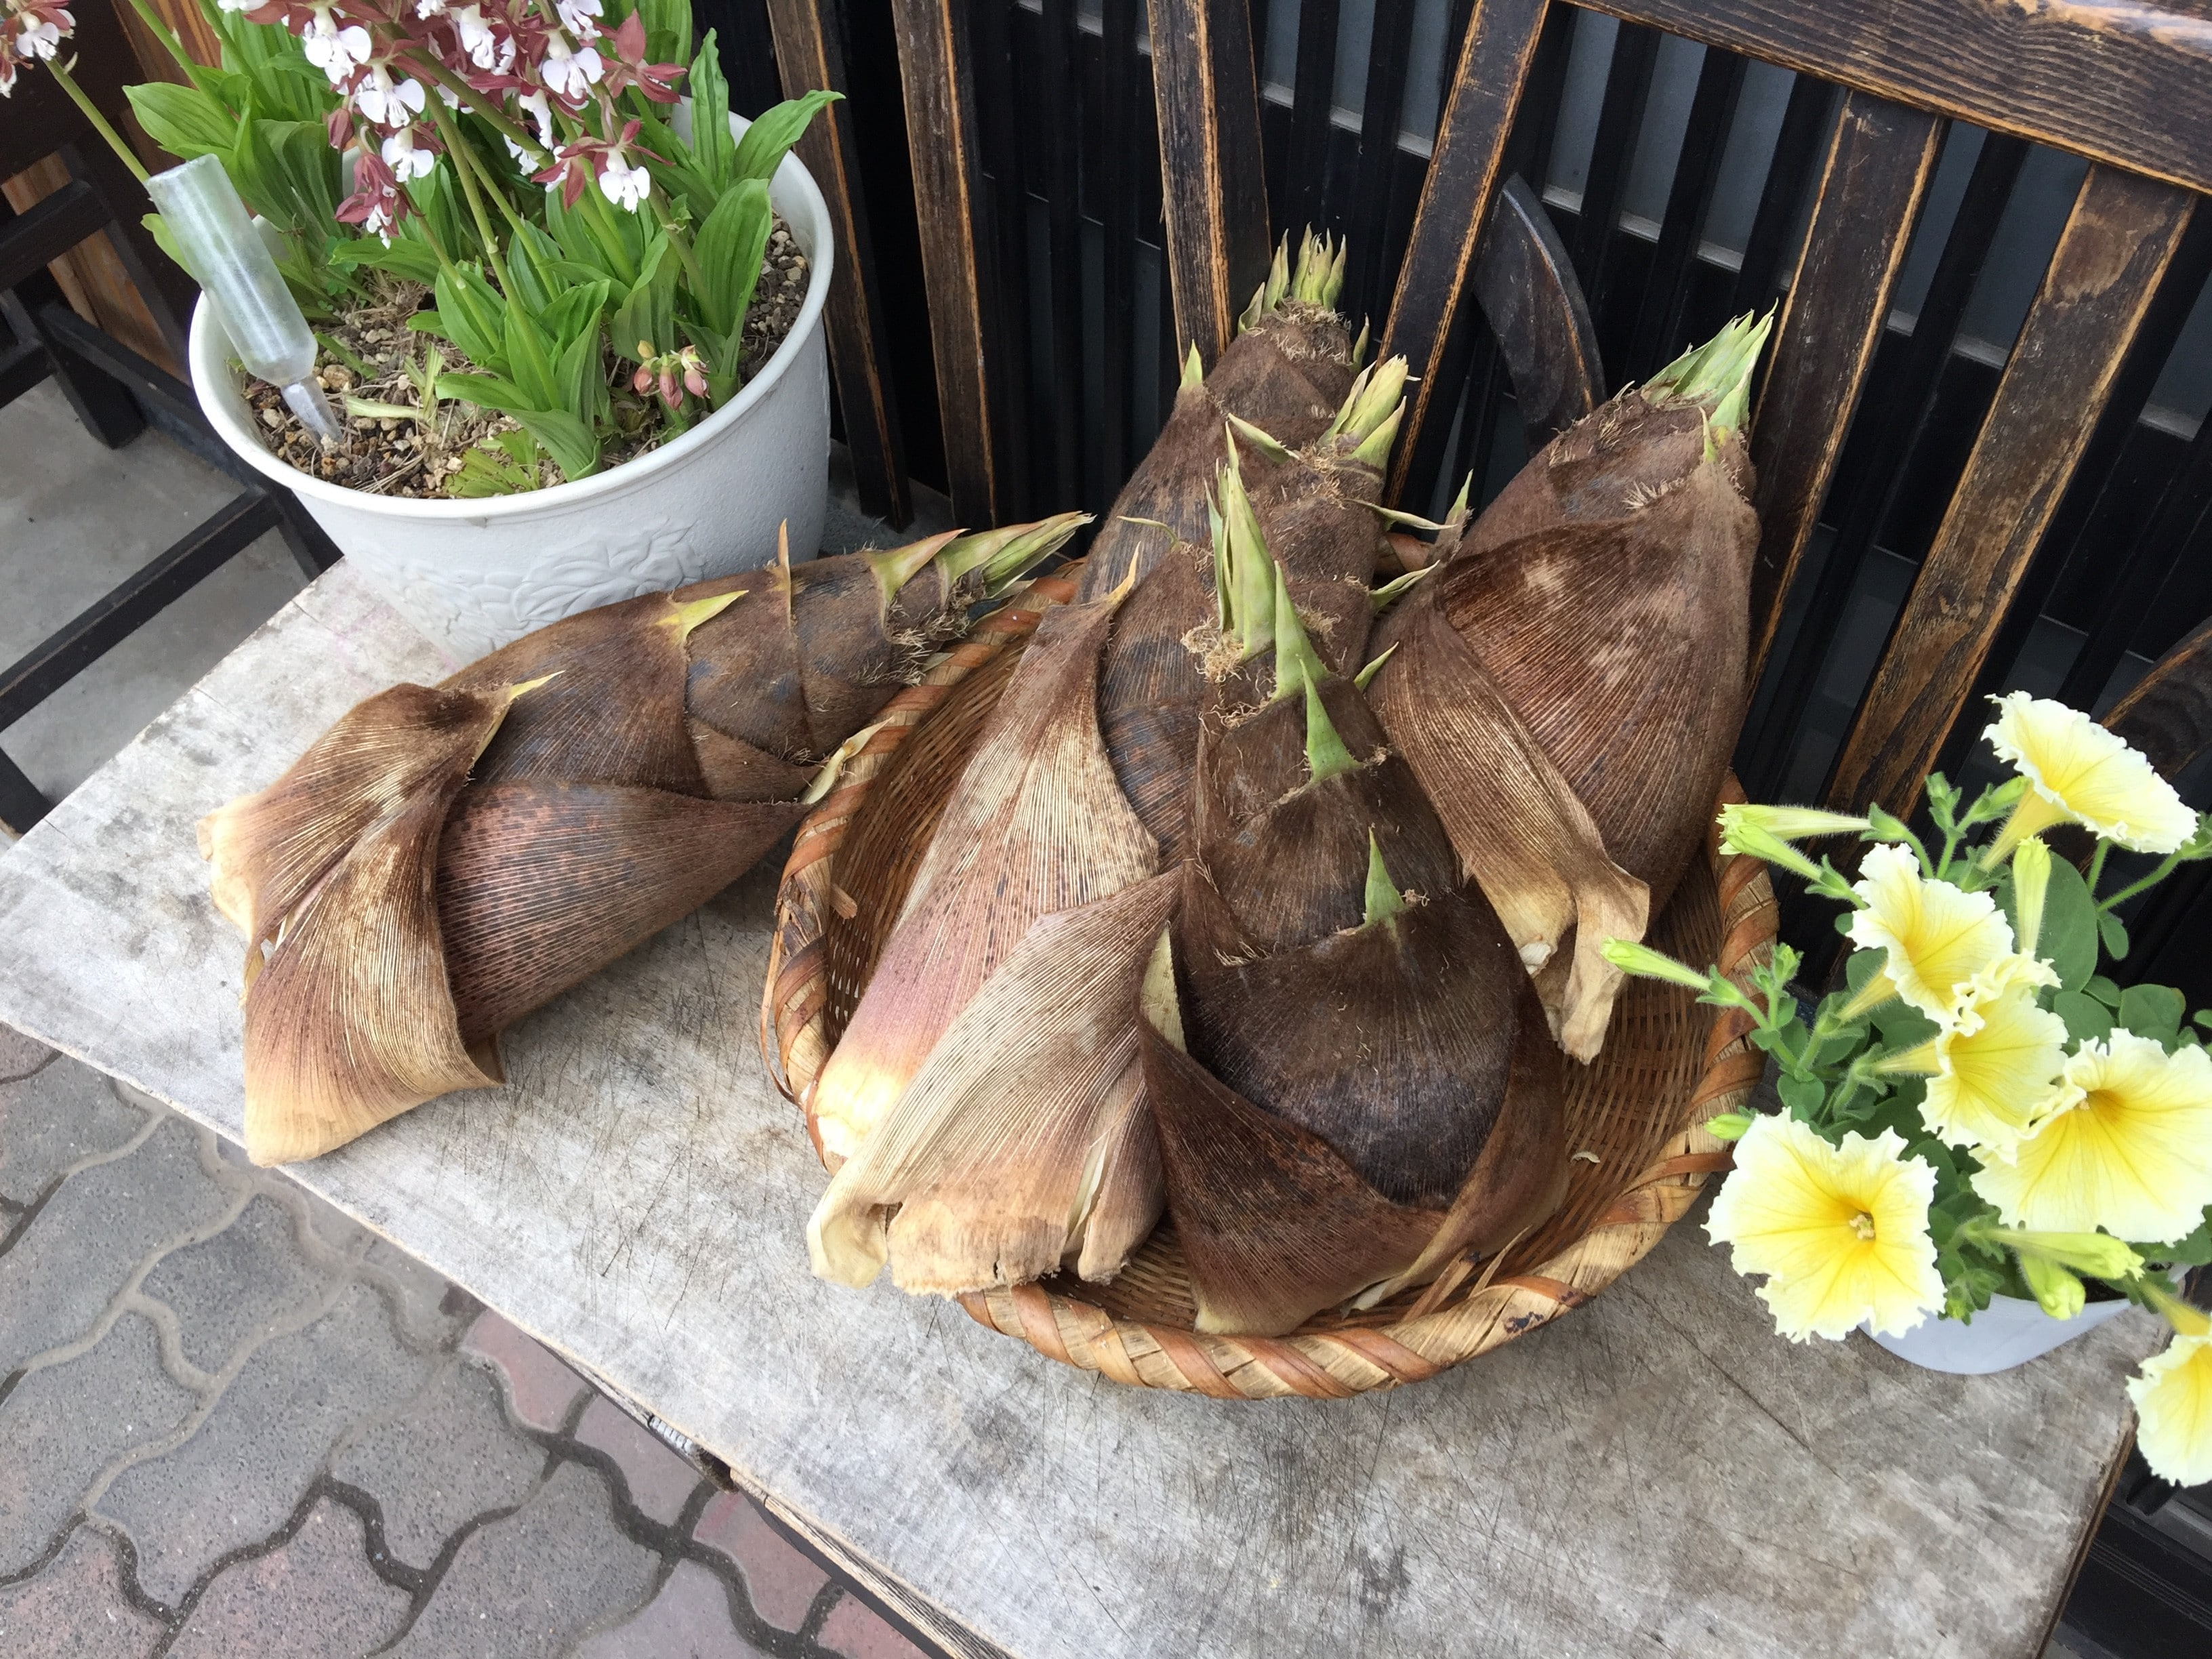 Bamboo shoots in Japan